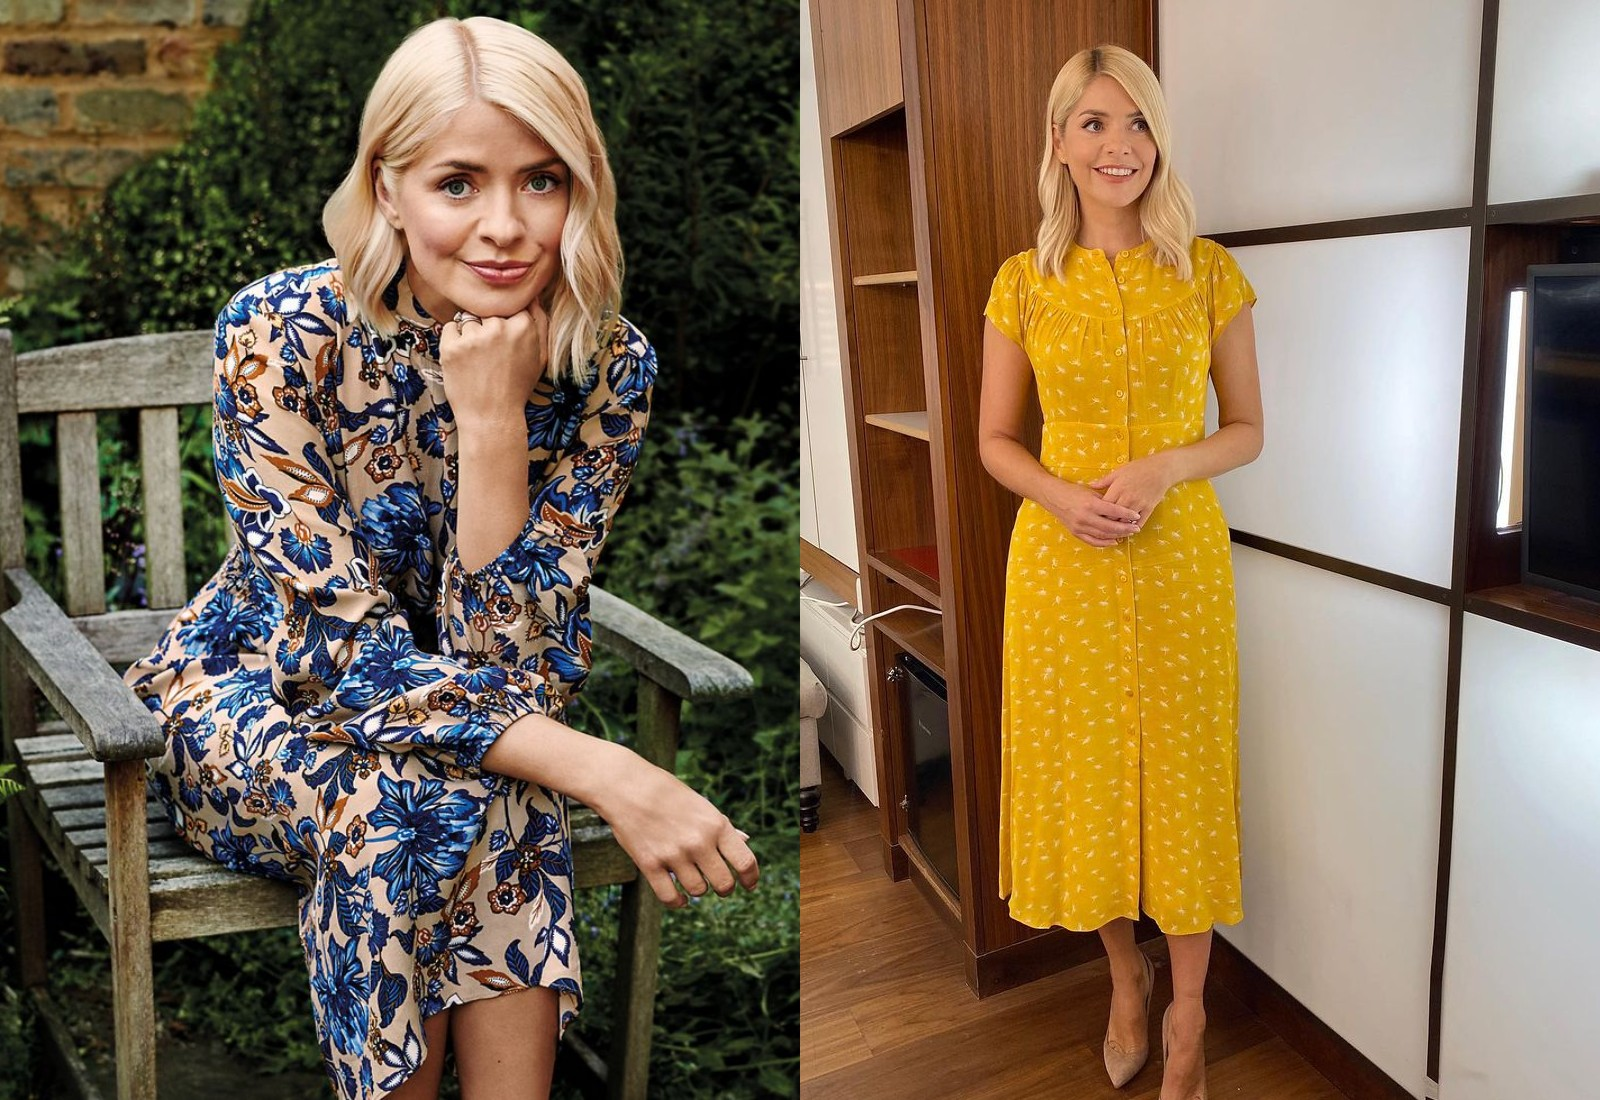 Фото © Instagram / hollywilloughby, Facebook / Holly Willoughby